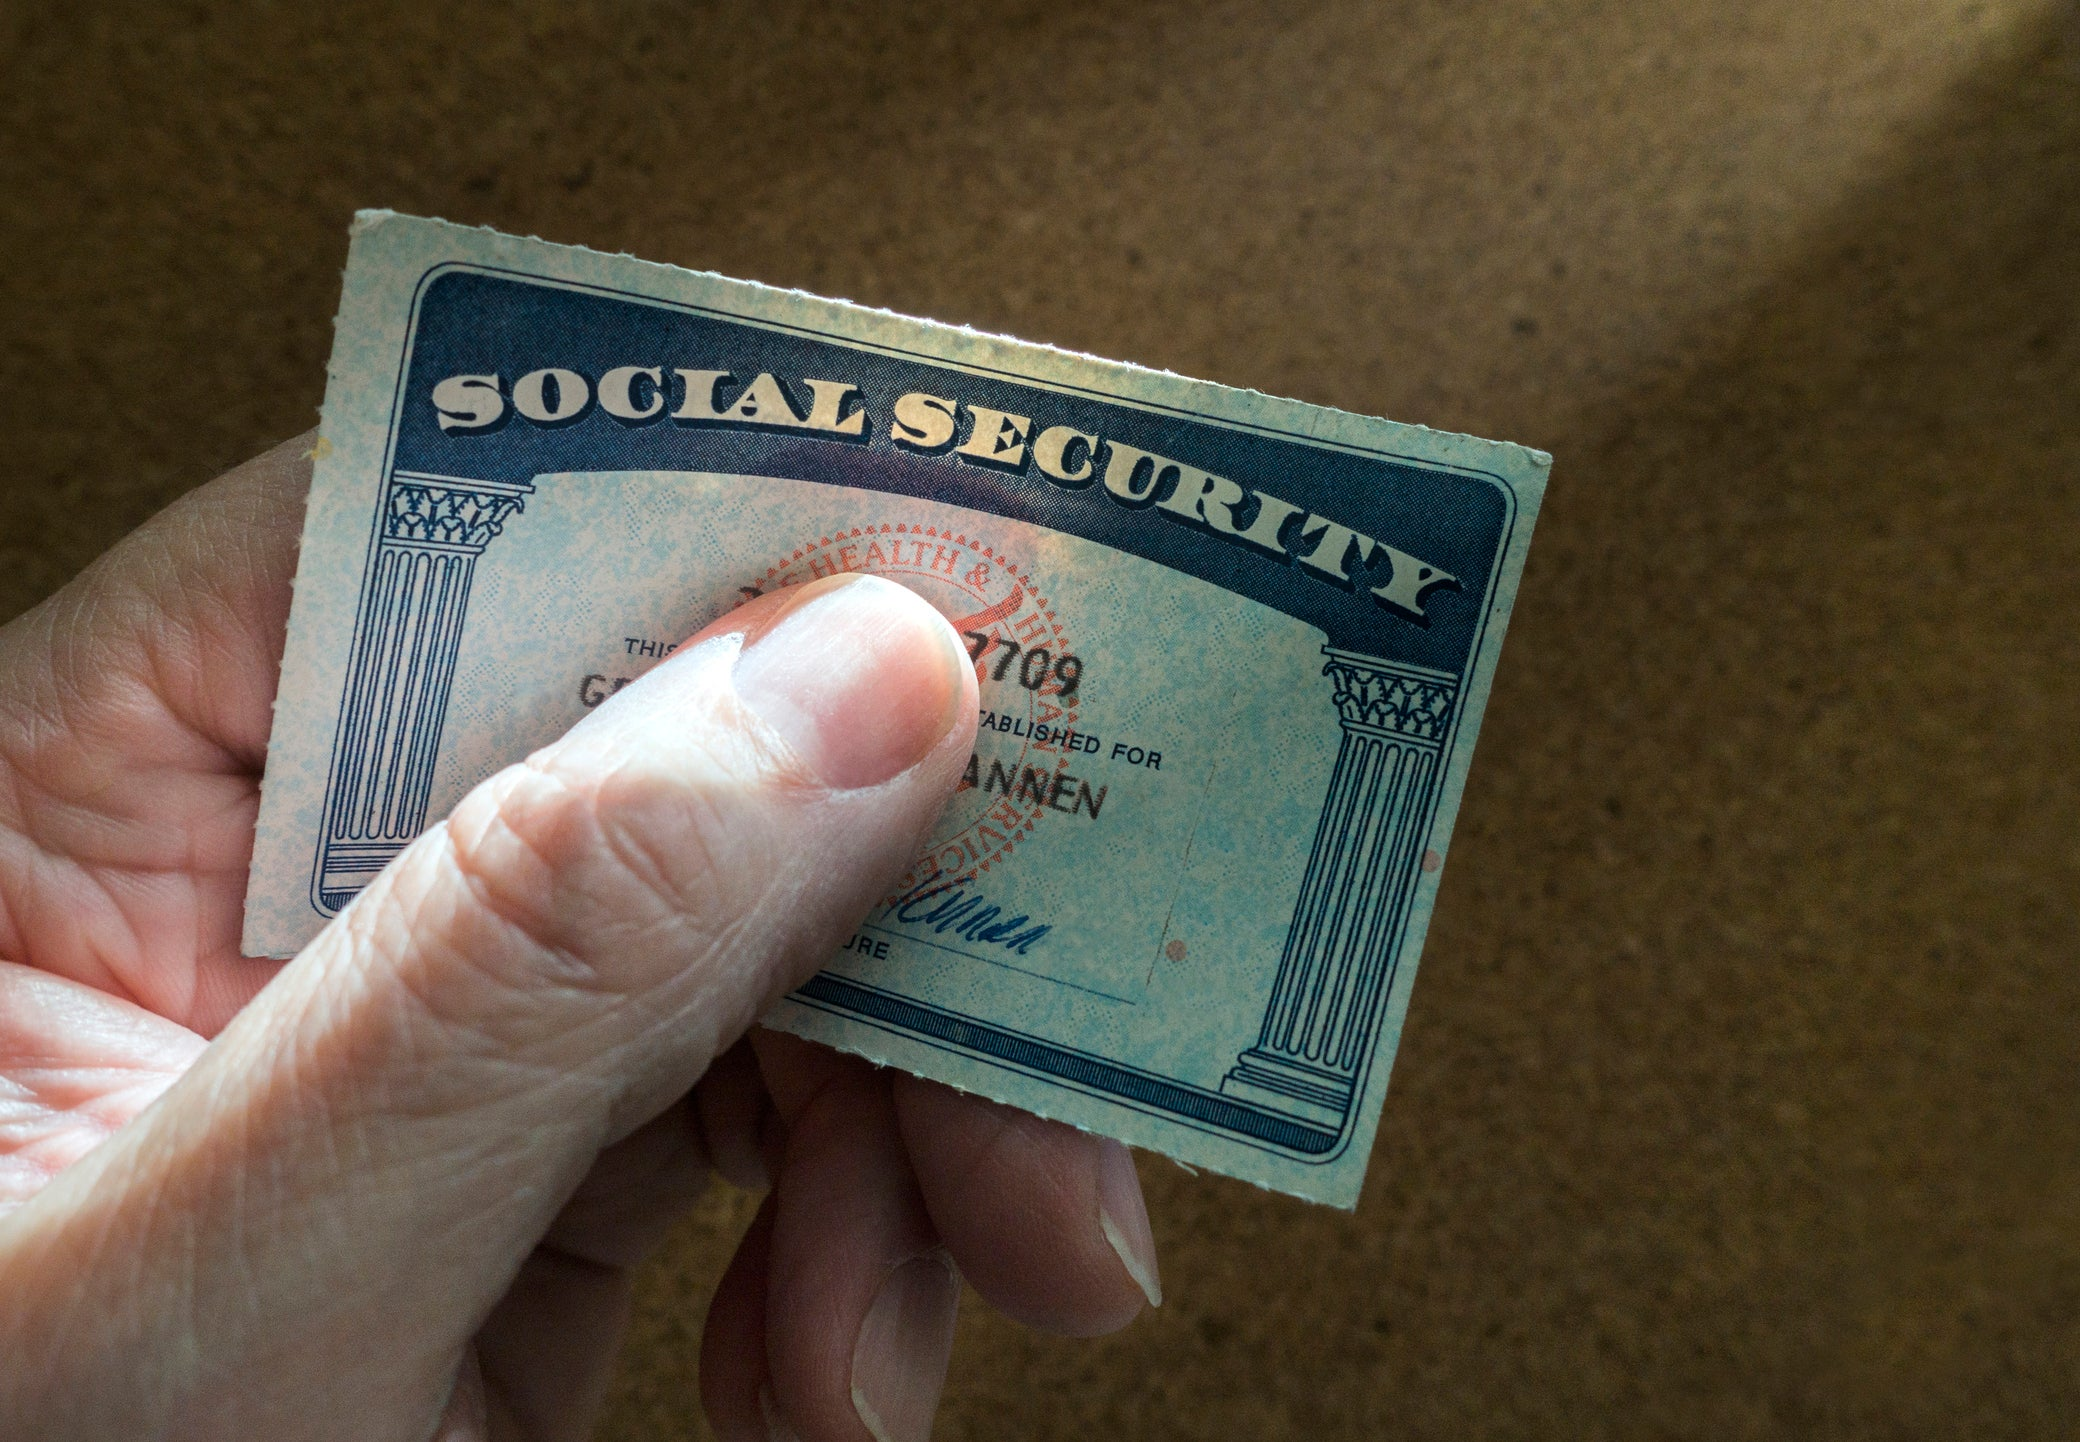 Ssa Calendar 2022.Forget 2022 A Big Social Security Change Is Happening Right Now The Motley Fool